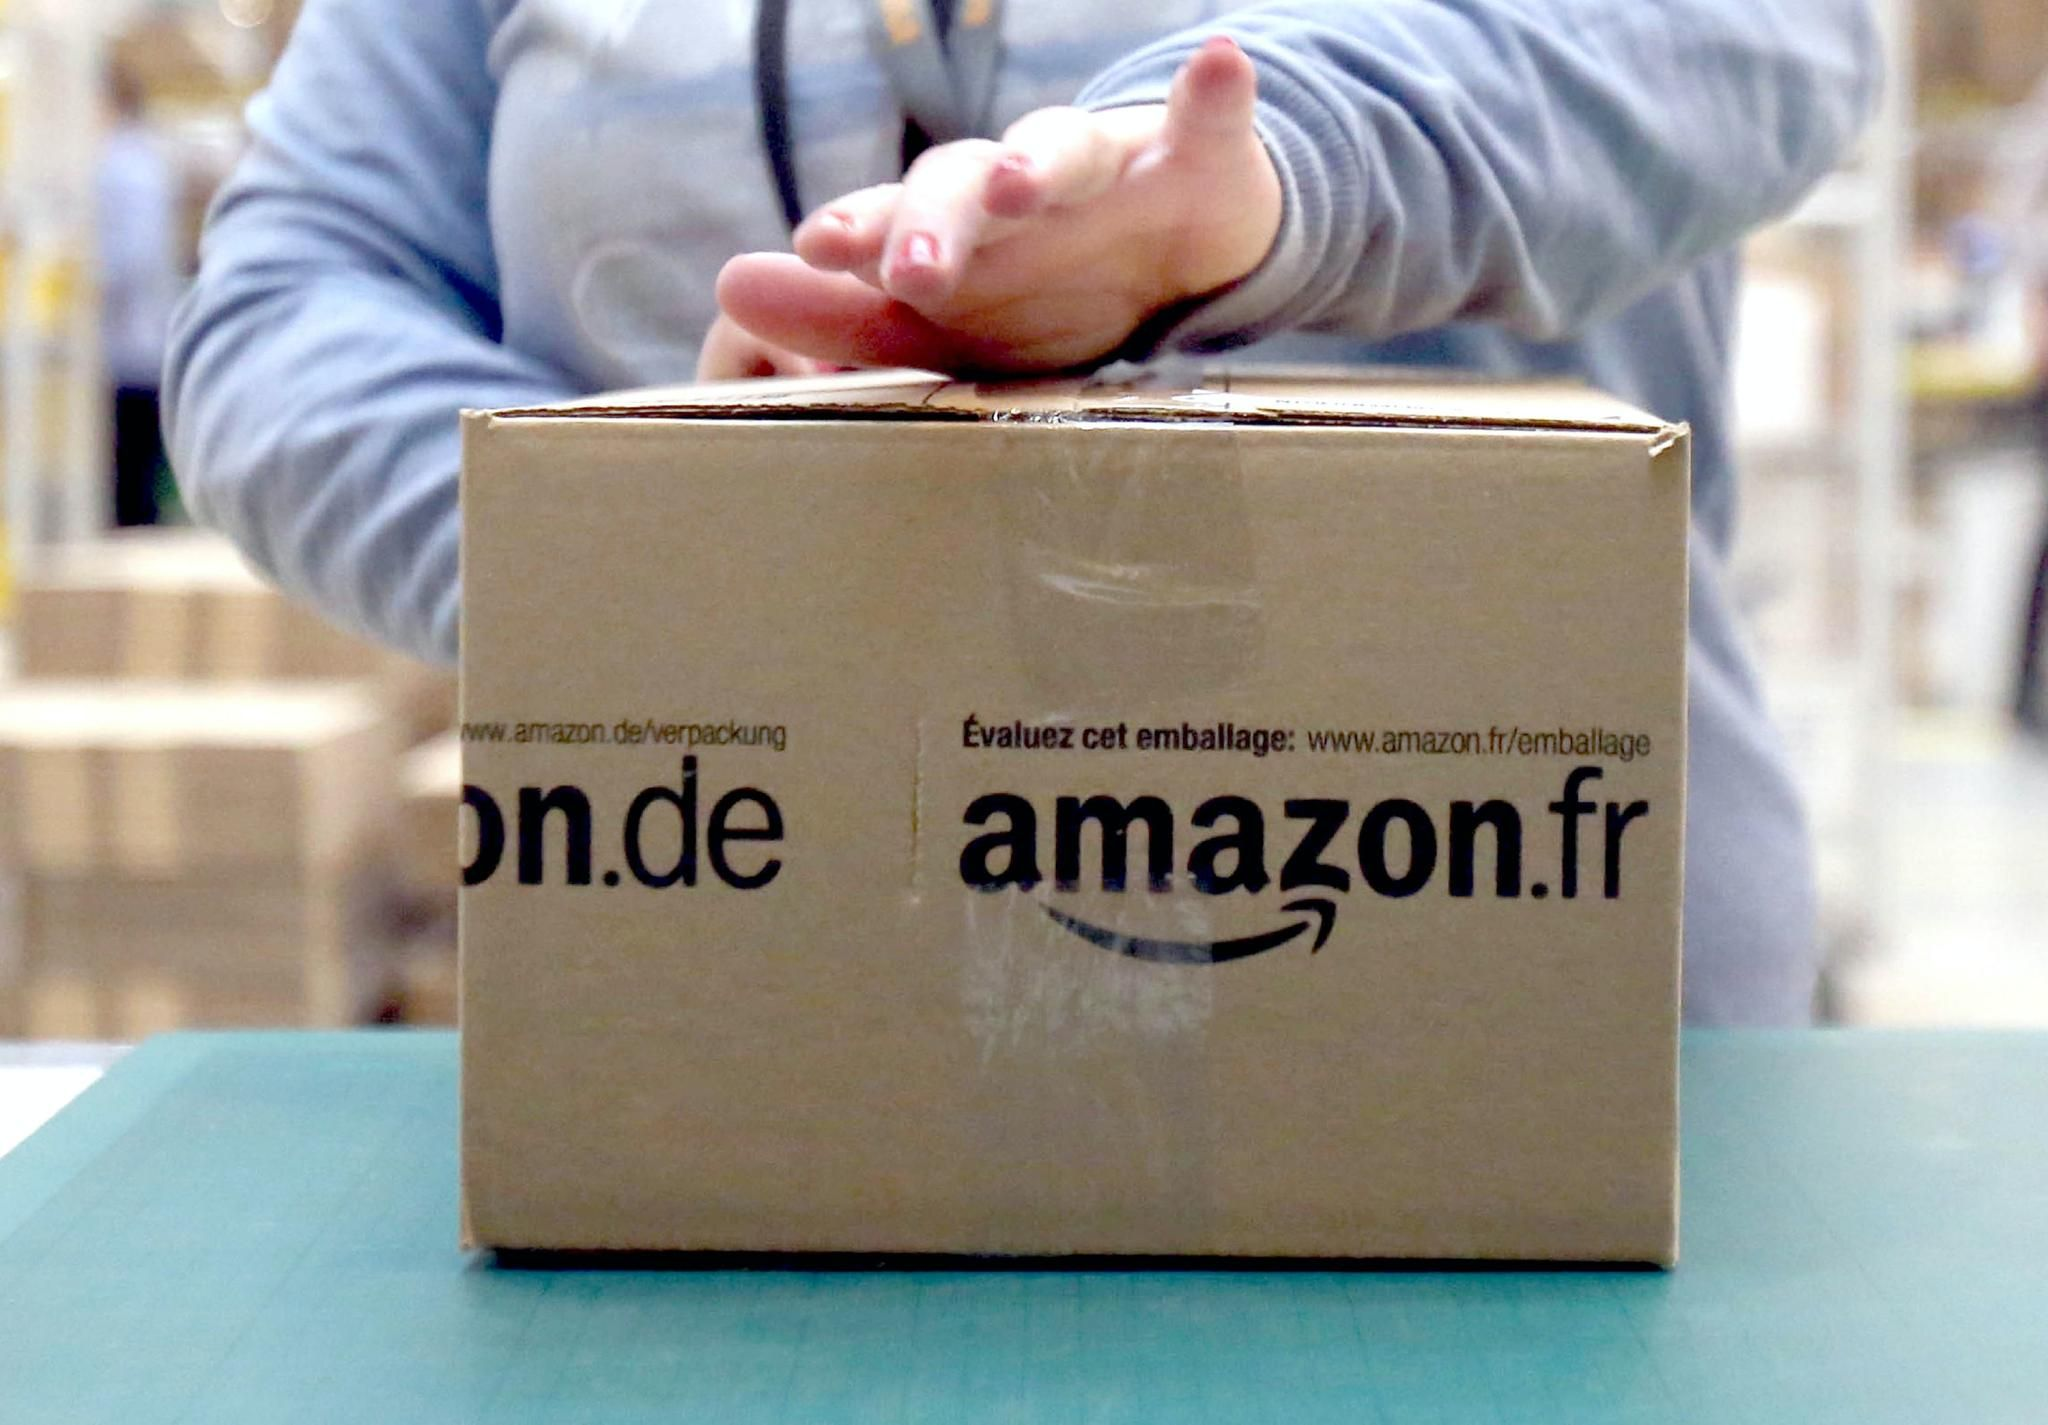 Politicians in US want to grill Amazon boss over market dominance